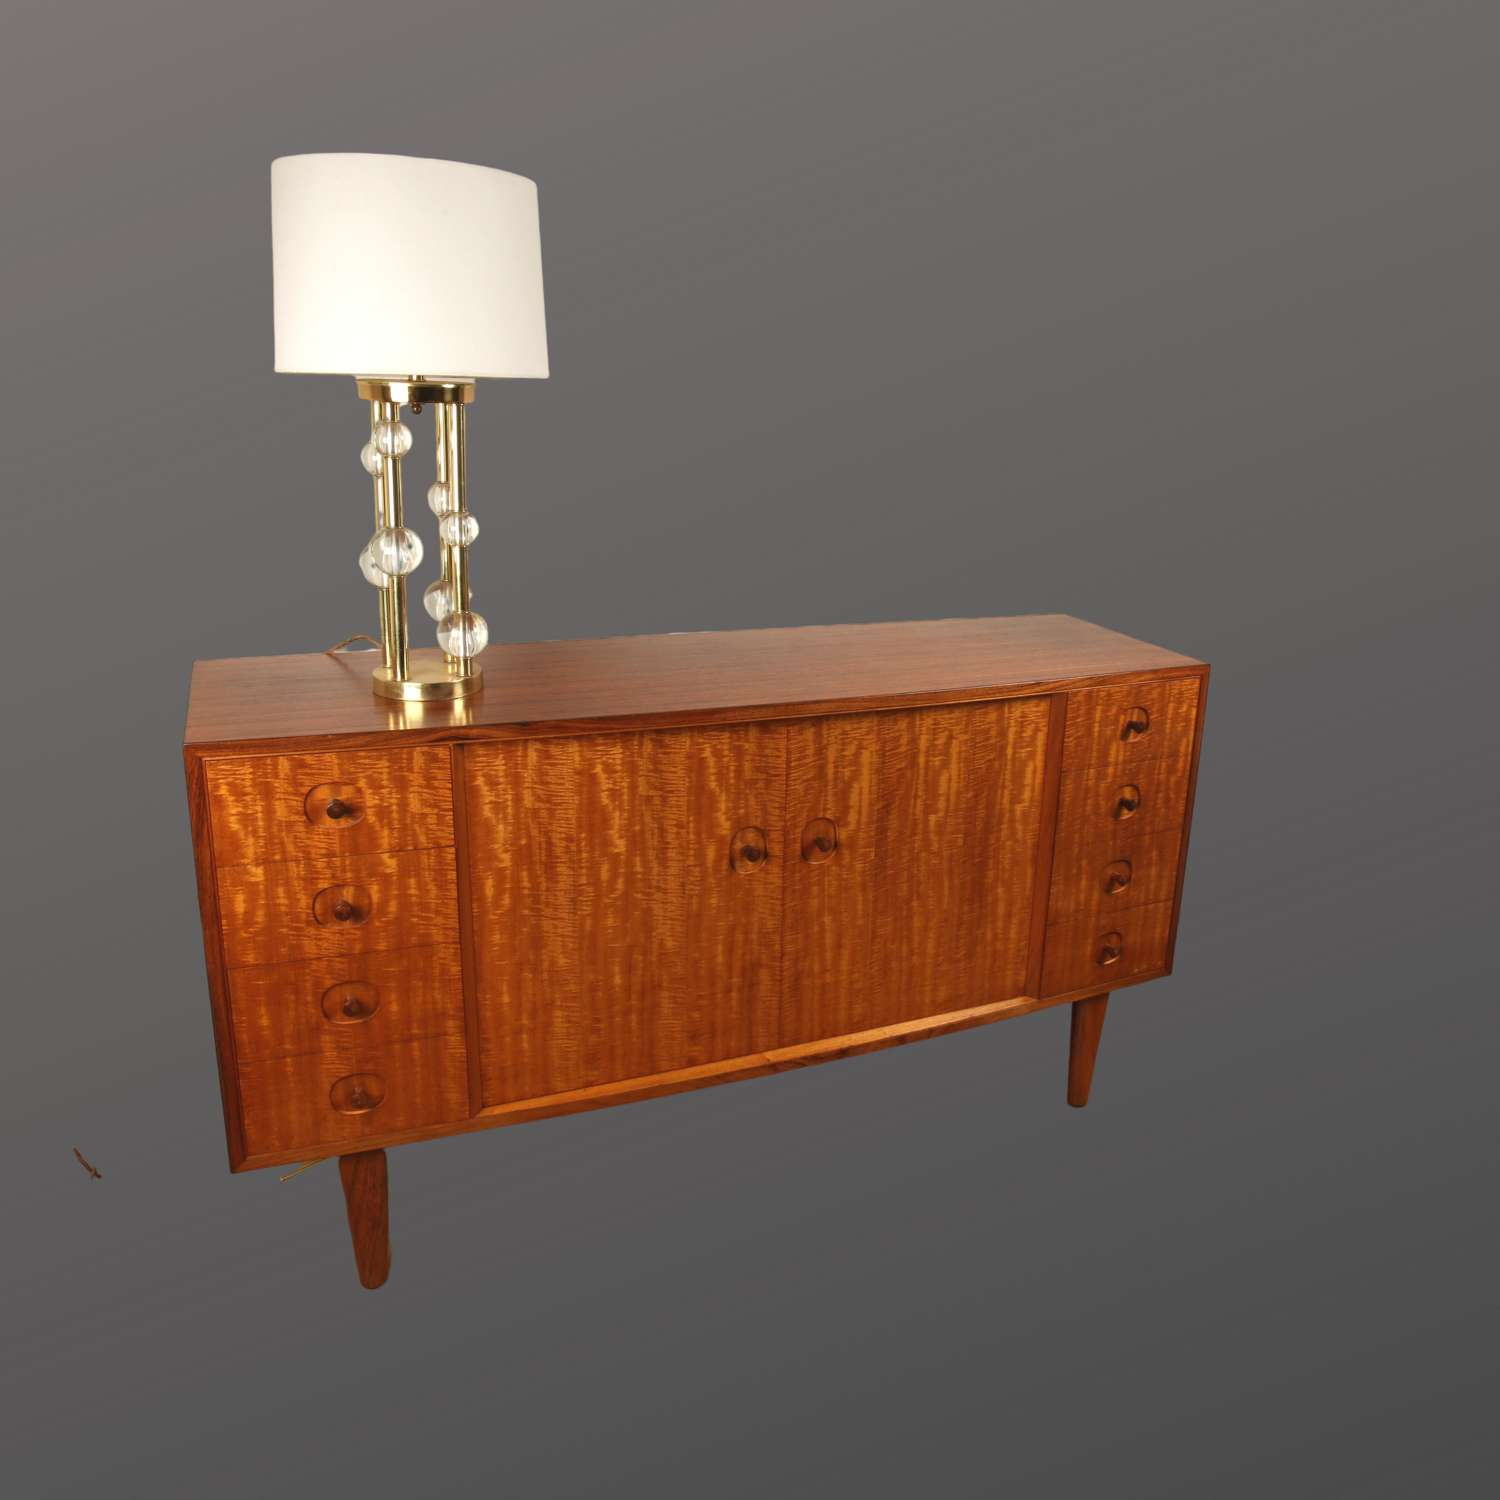 Gordon Russell: English 1950s Sideboard